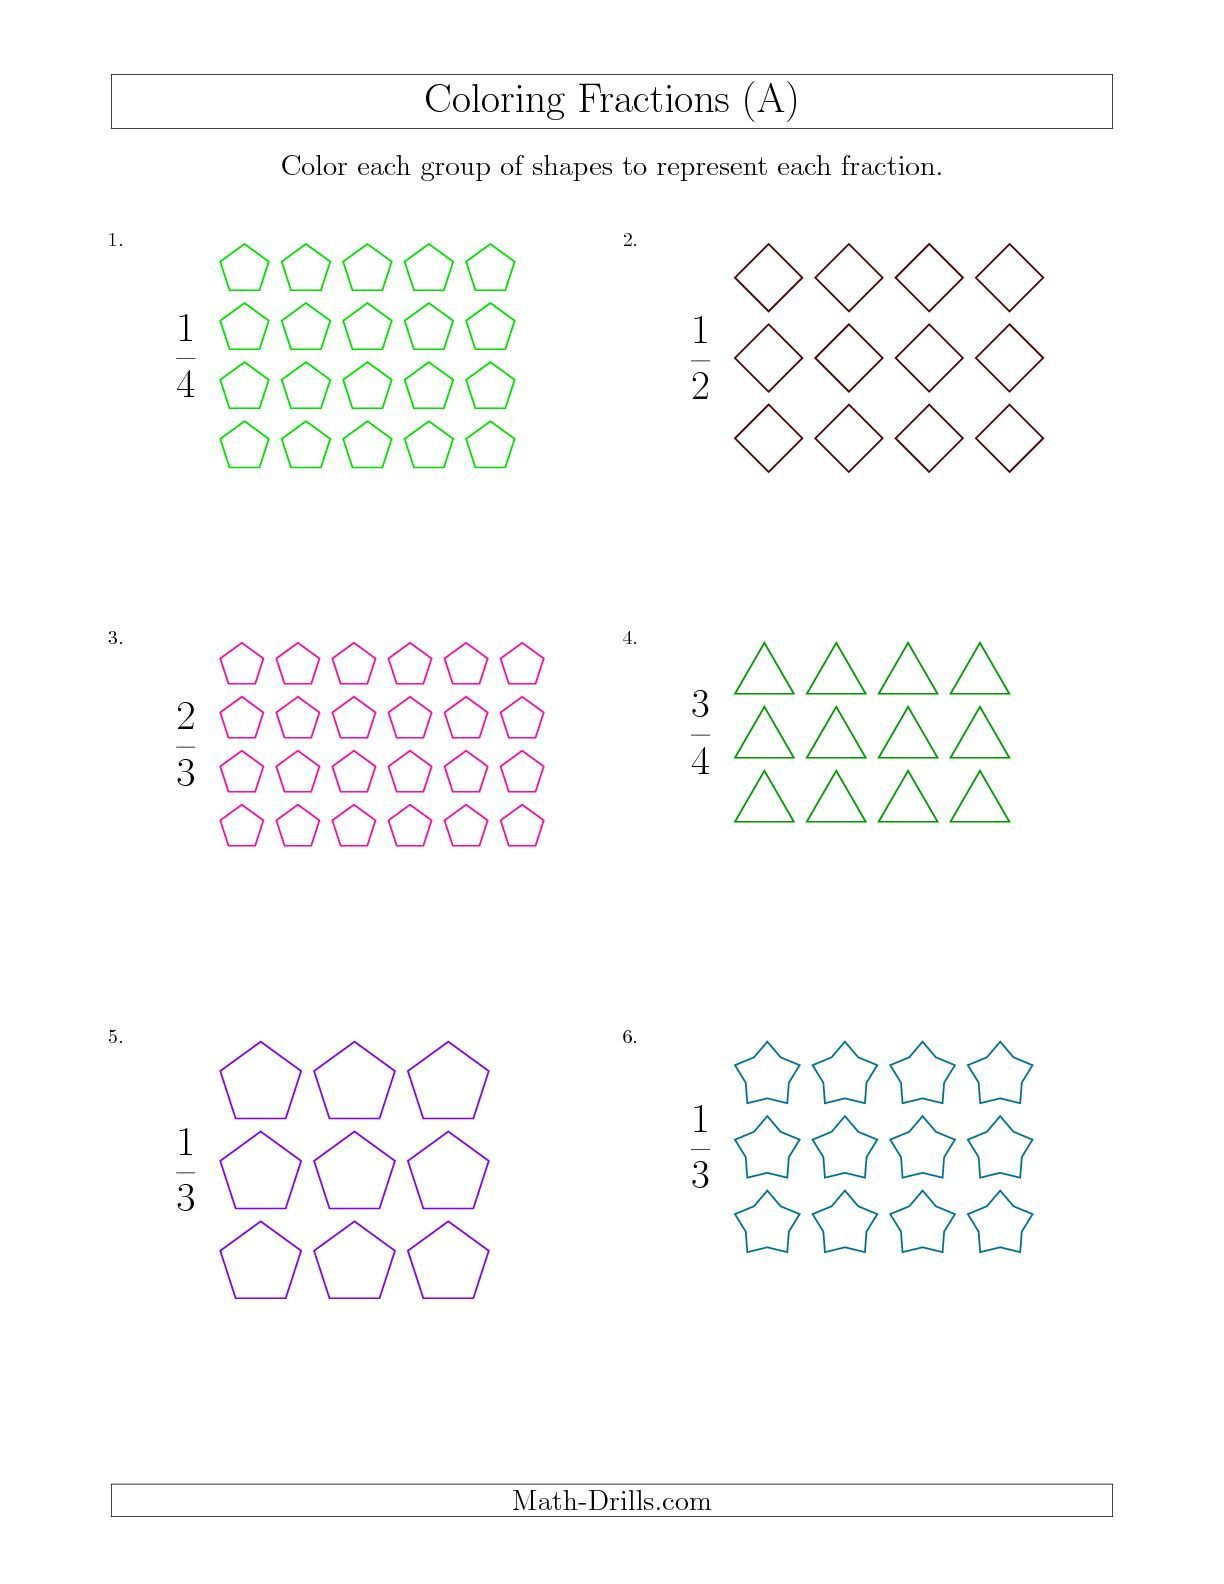 The Coloring Groups Of Shapes To Represent Fractions A